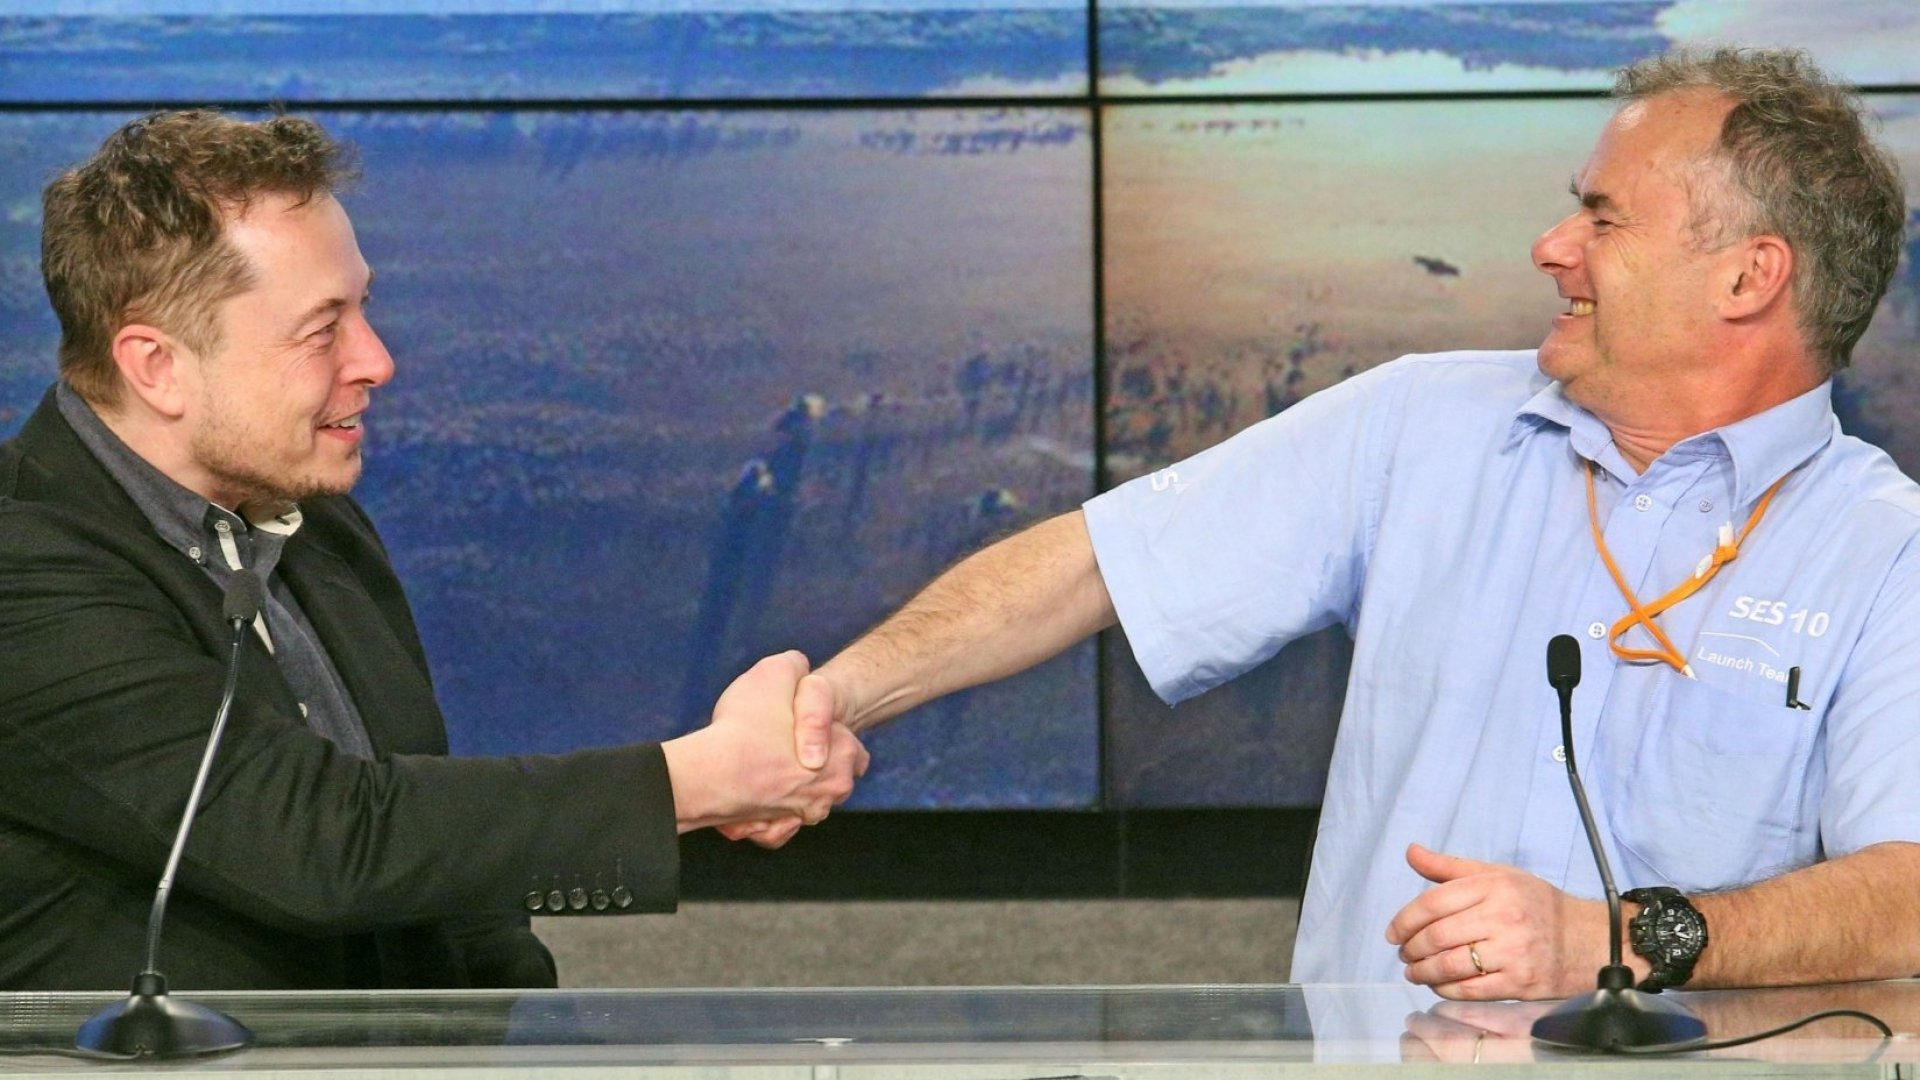 SpaceX CEO Elon Musk, left, shakes the hand of CTO Martin Halliwell, SES Satellites, after a SpaceX Falcon 9 rocket, powered by a previously flown first-stage rocket, blasted off from Kennedy Space Center on Thursday, March 30, 2017. This is the first time SpaceX has reused a booster rocket for a space mission.